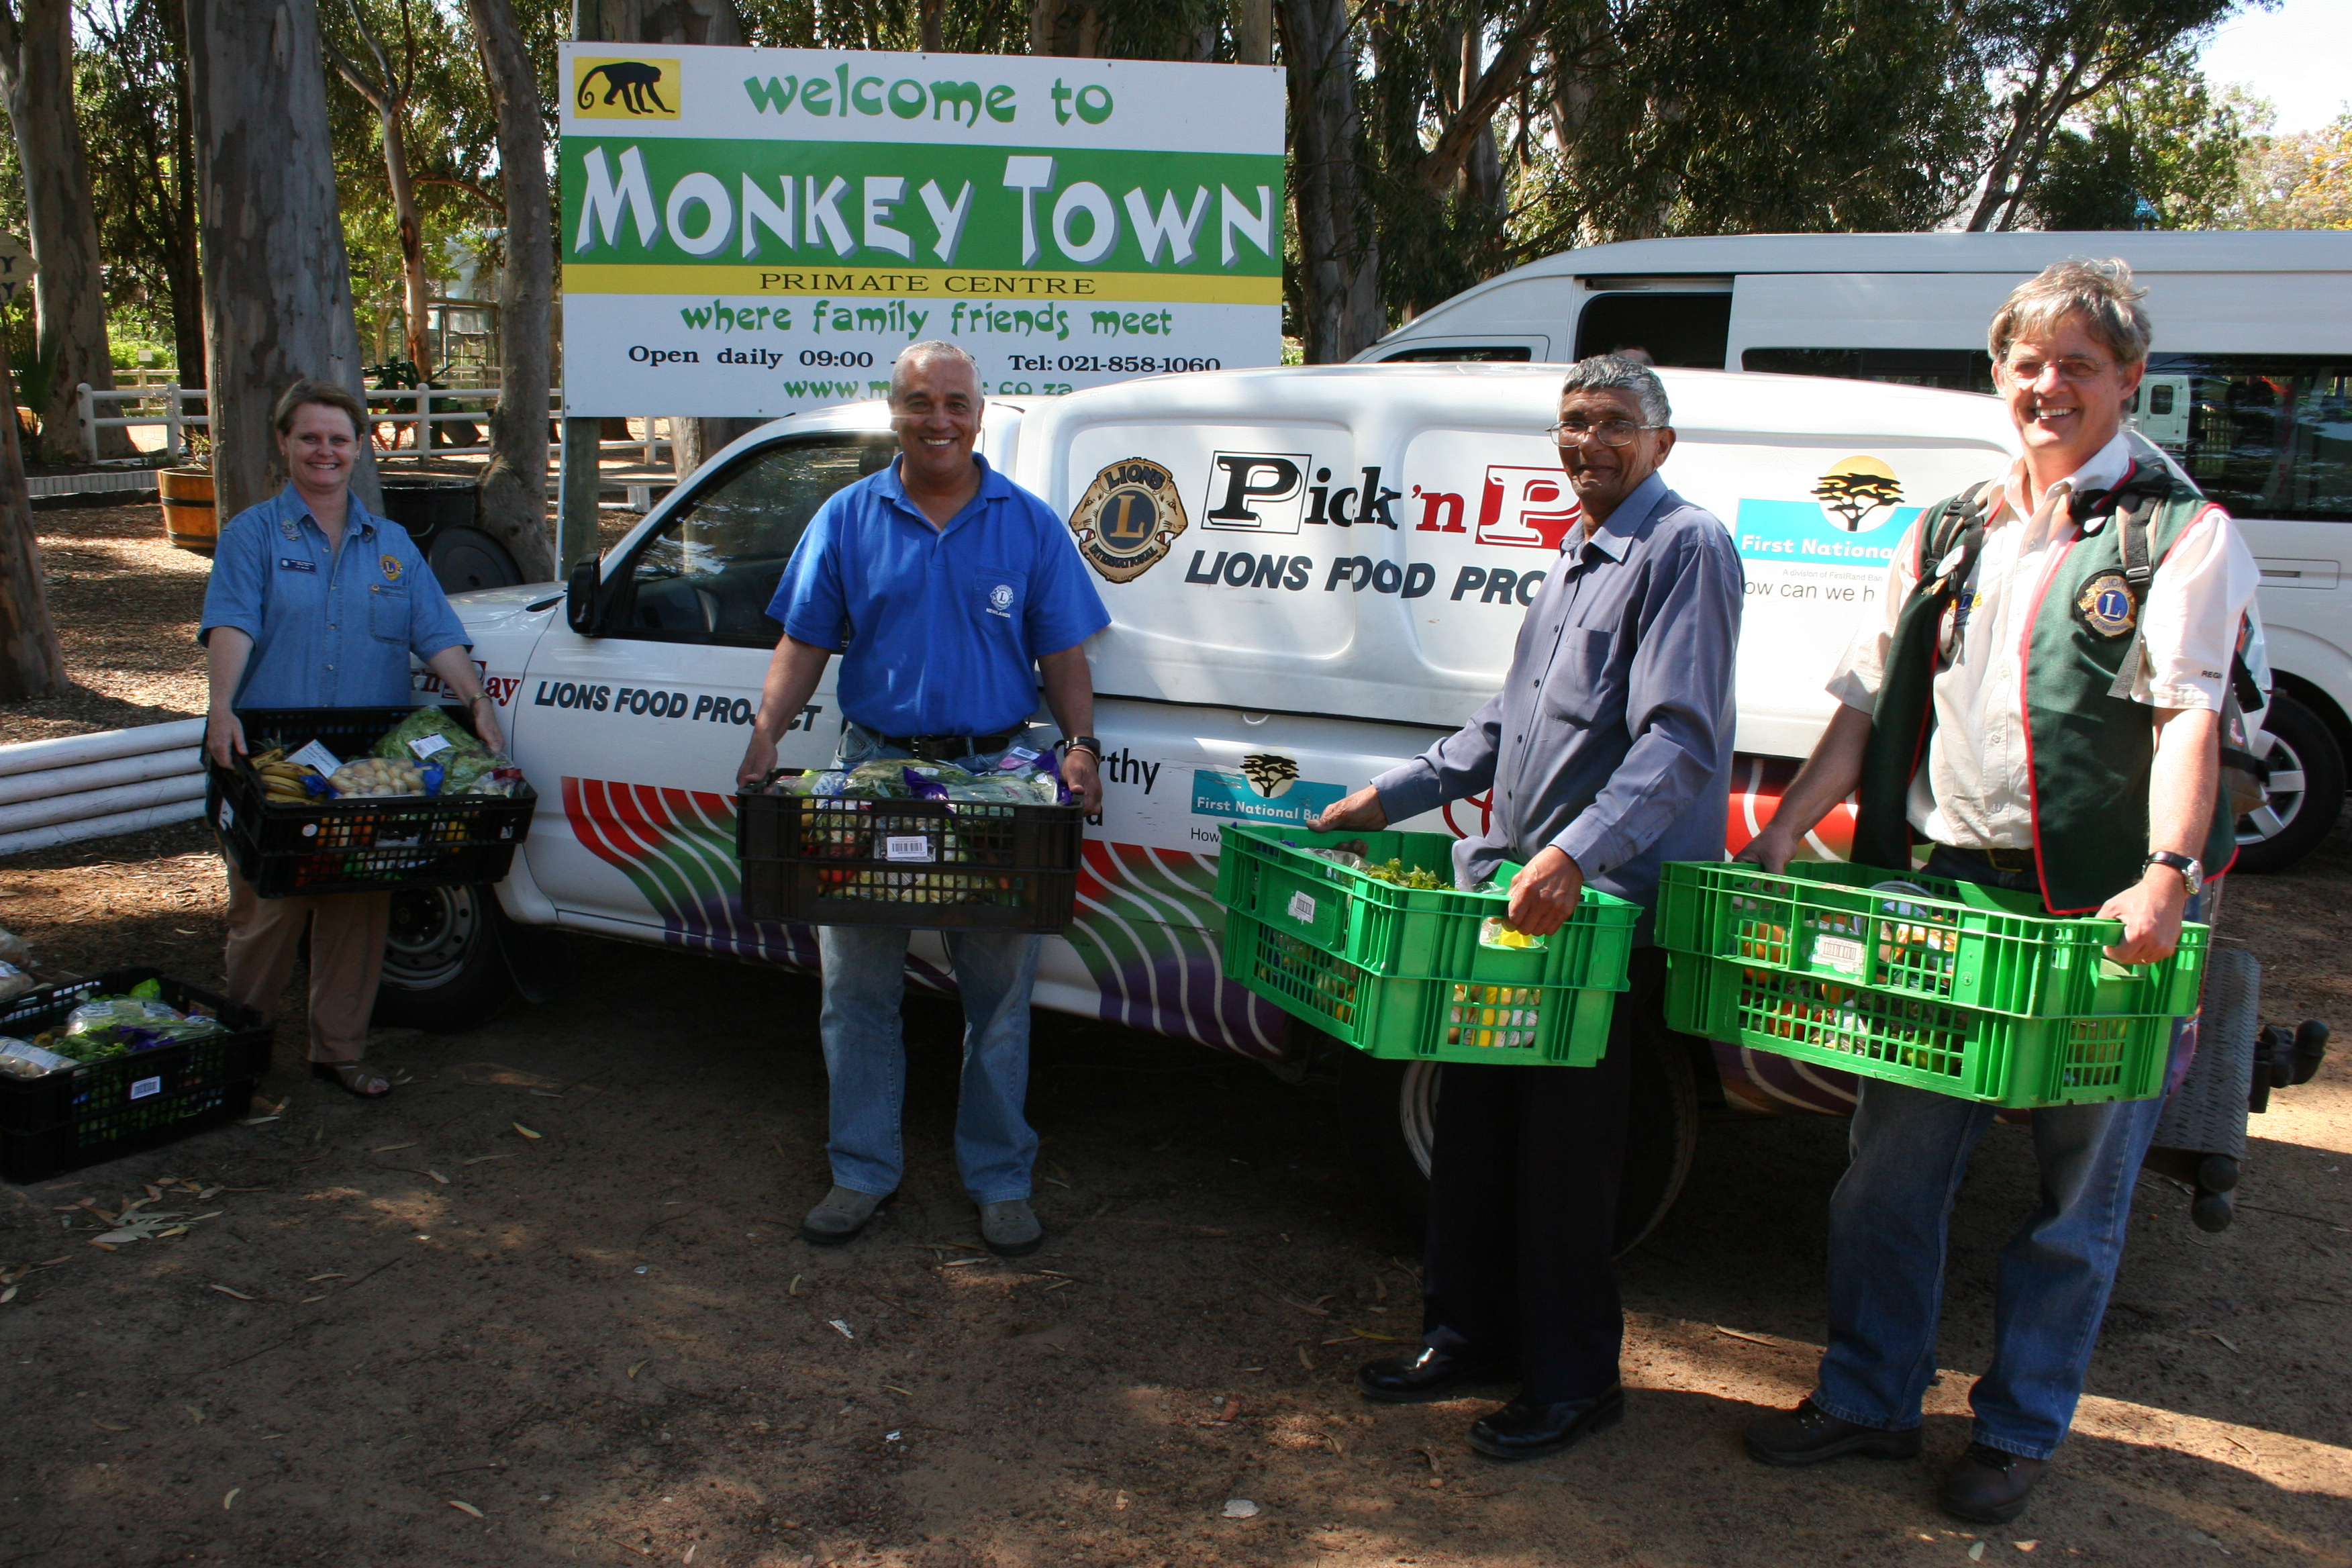 Lions Provide Food for Monkey Town